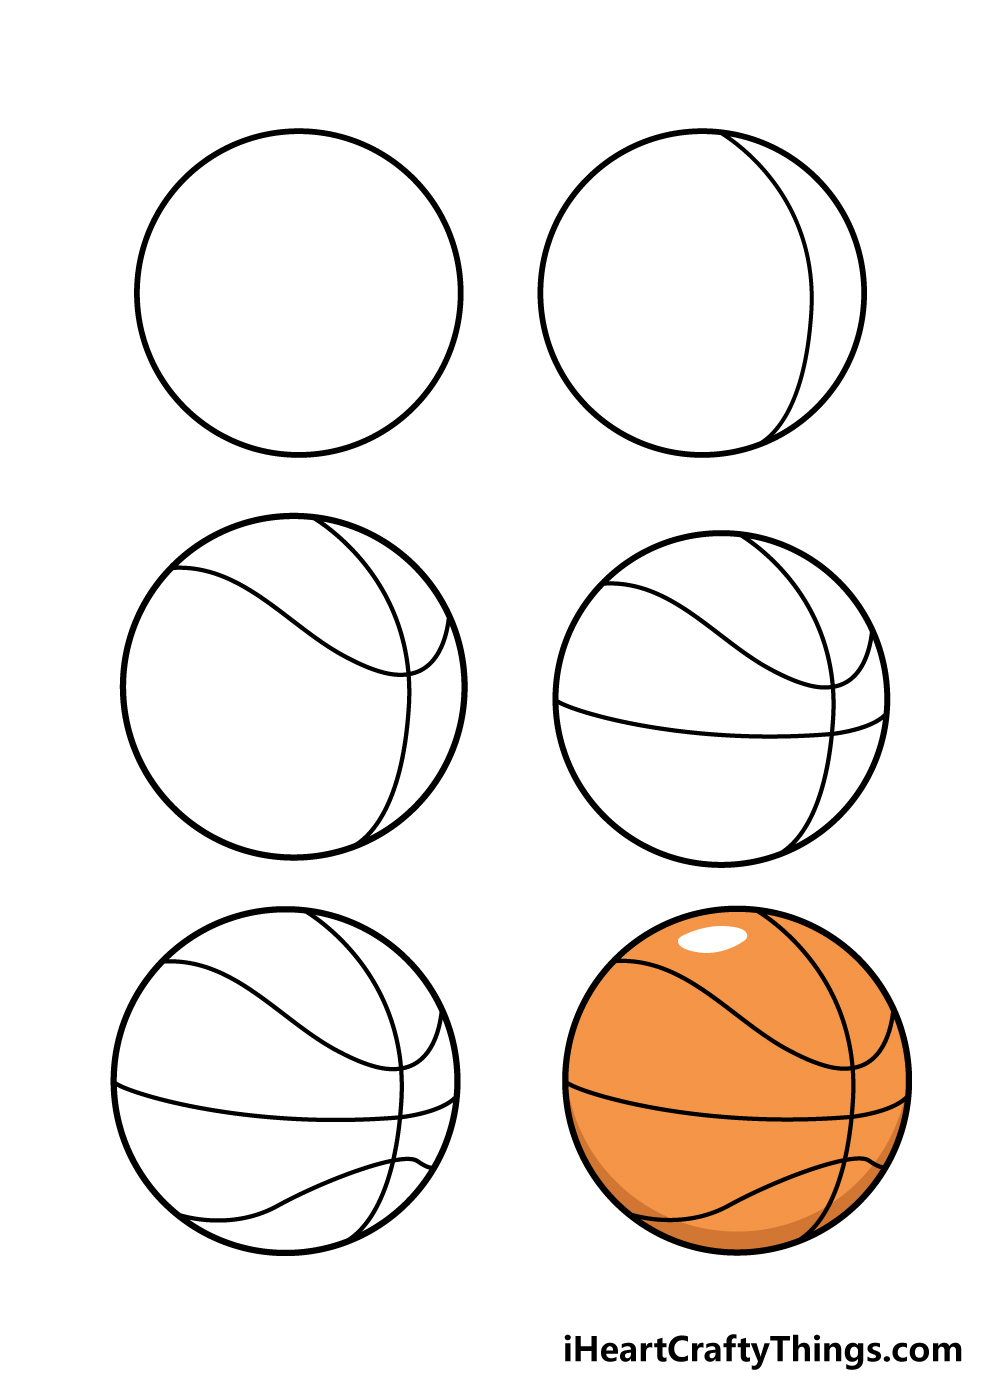 how to draw basketball in 6 steps